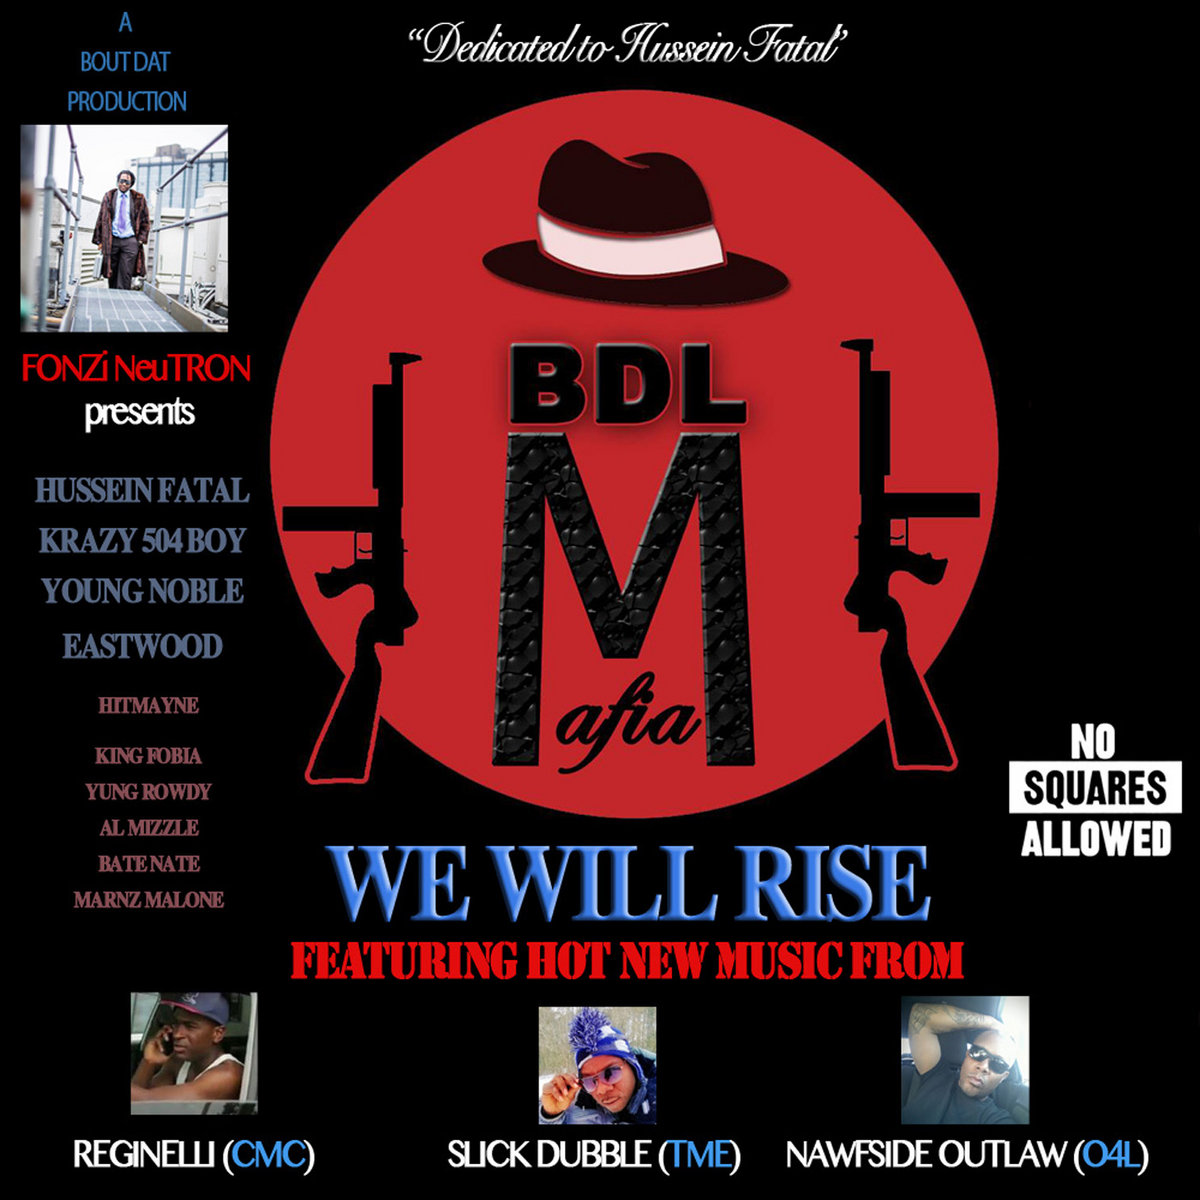 We Will Rise (Cosmic Ridahz) [2016] | Bout Dat Online